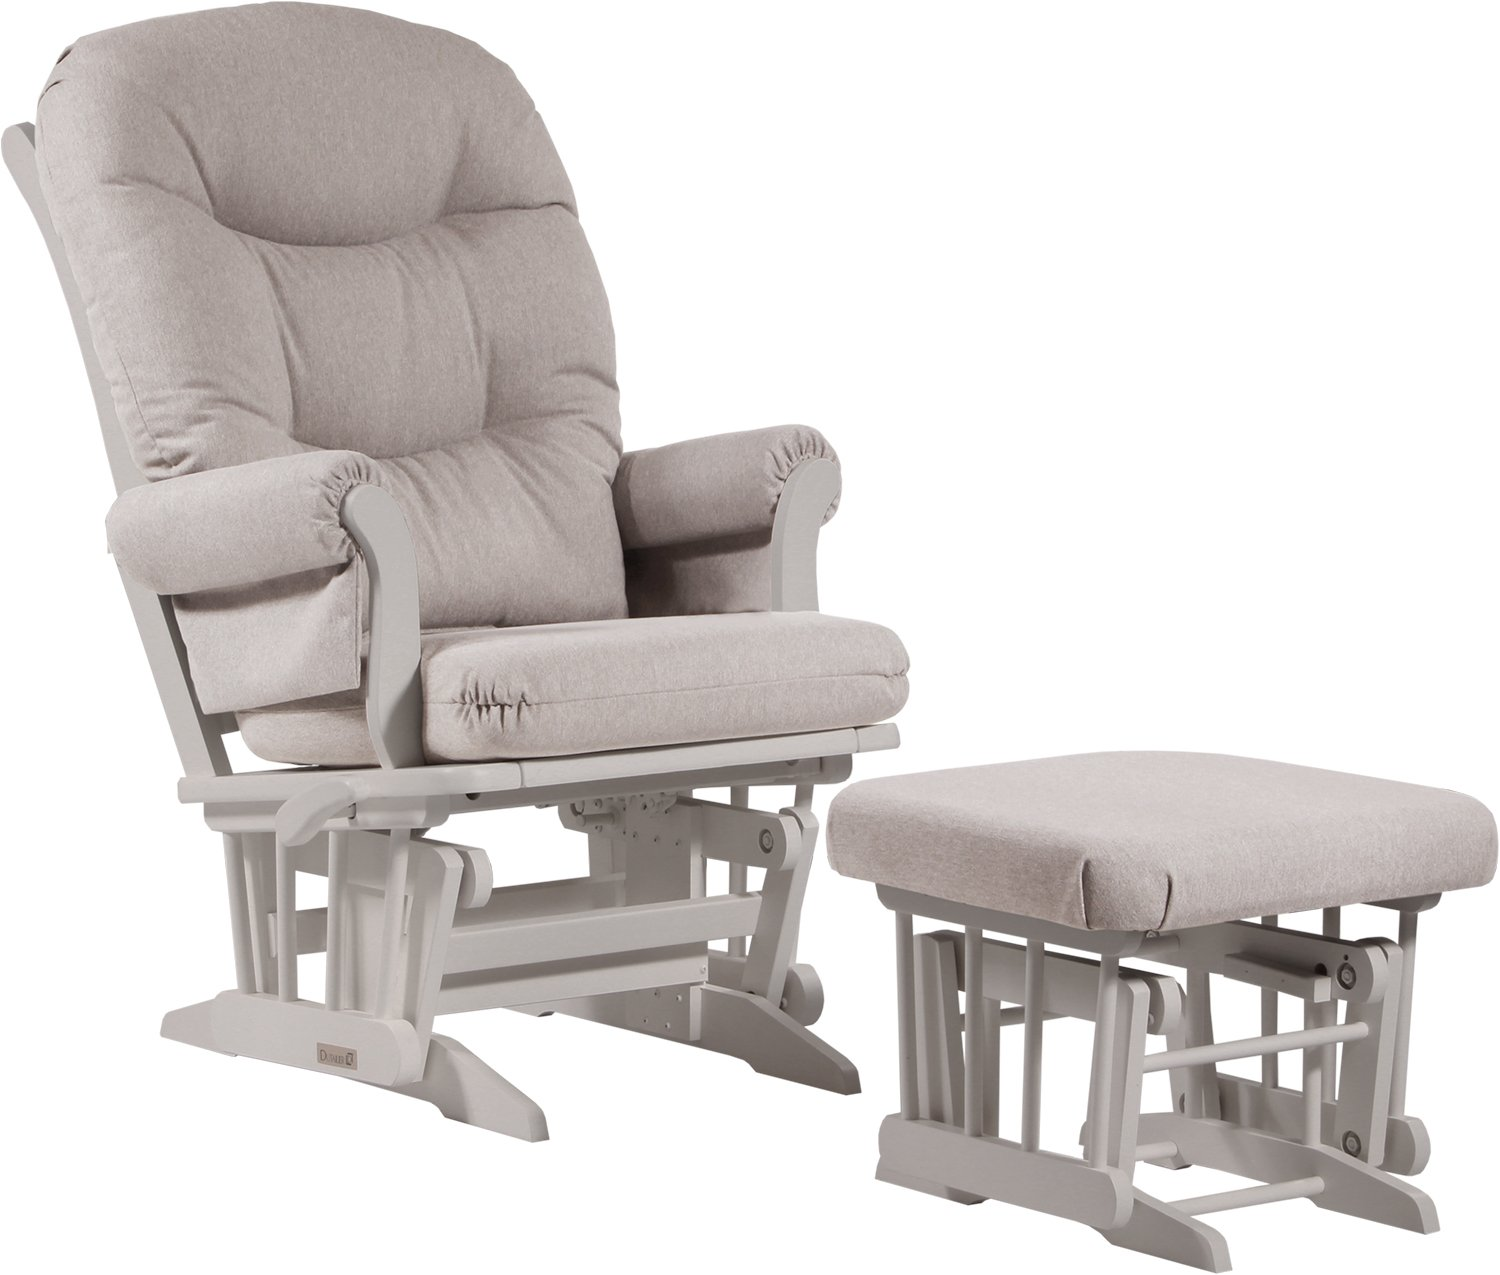 Dutailier Sleigh 0393 Glider Multiposition-Lock Recline with Nursing Ottoman Included by Dutailier